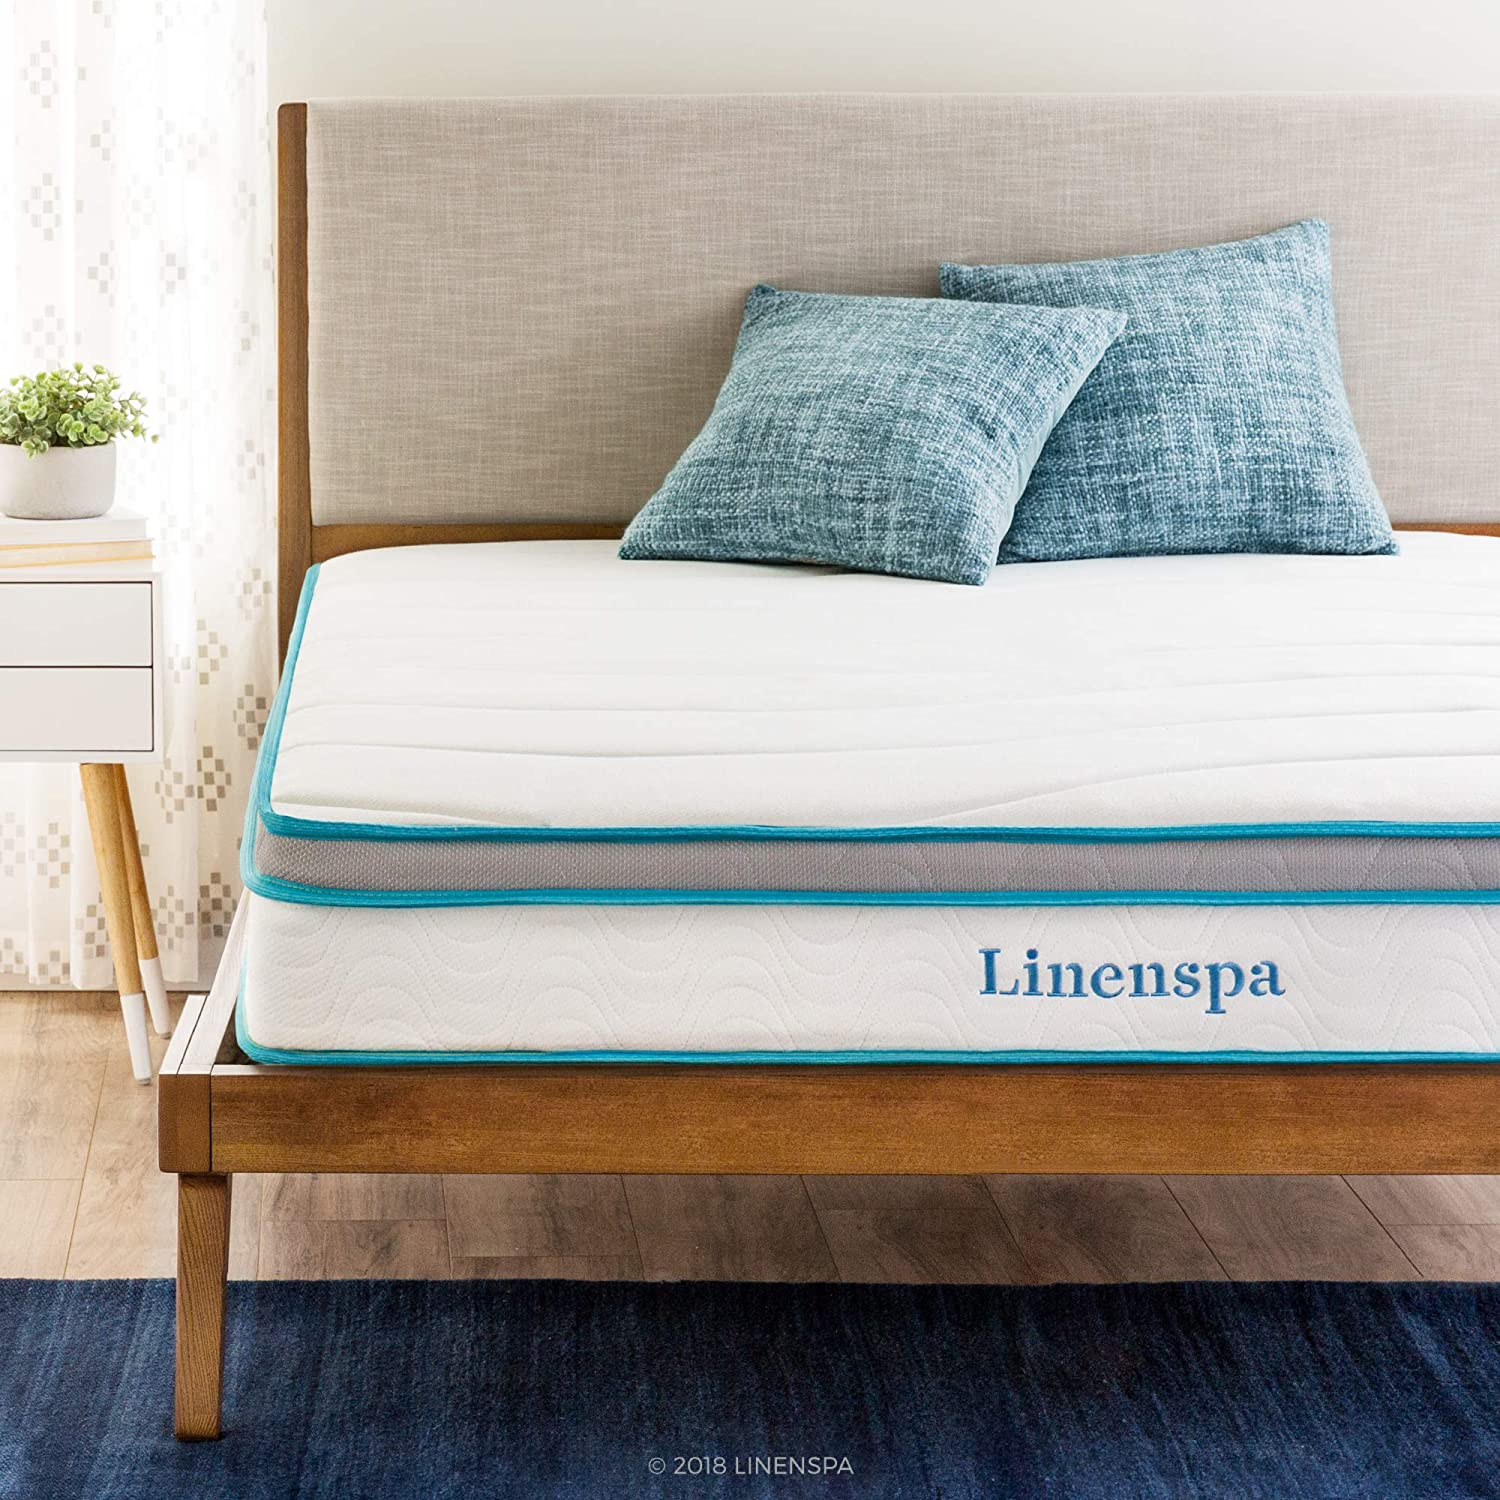 Linenspa Cozy Foam Mattress